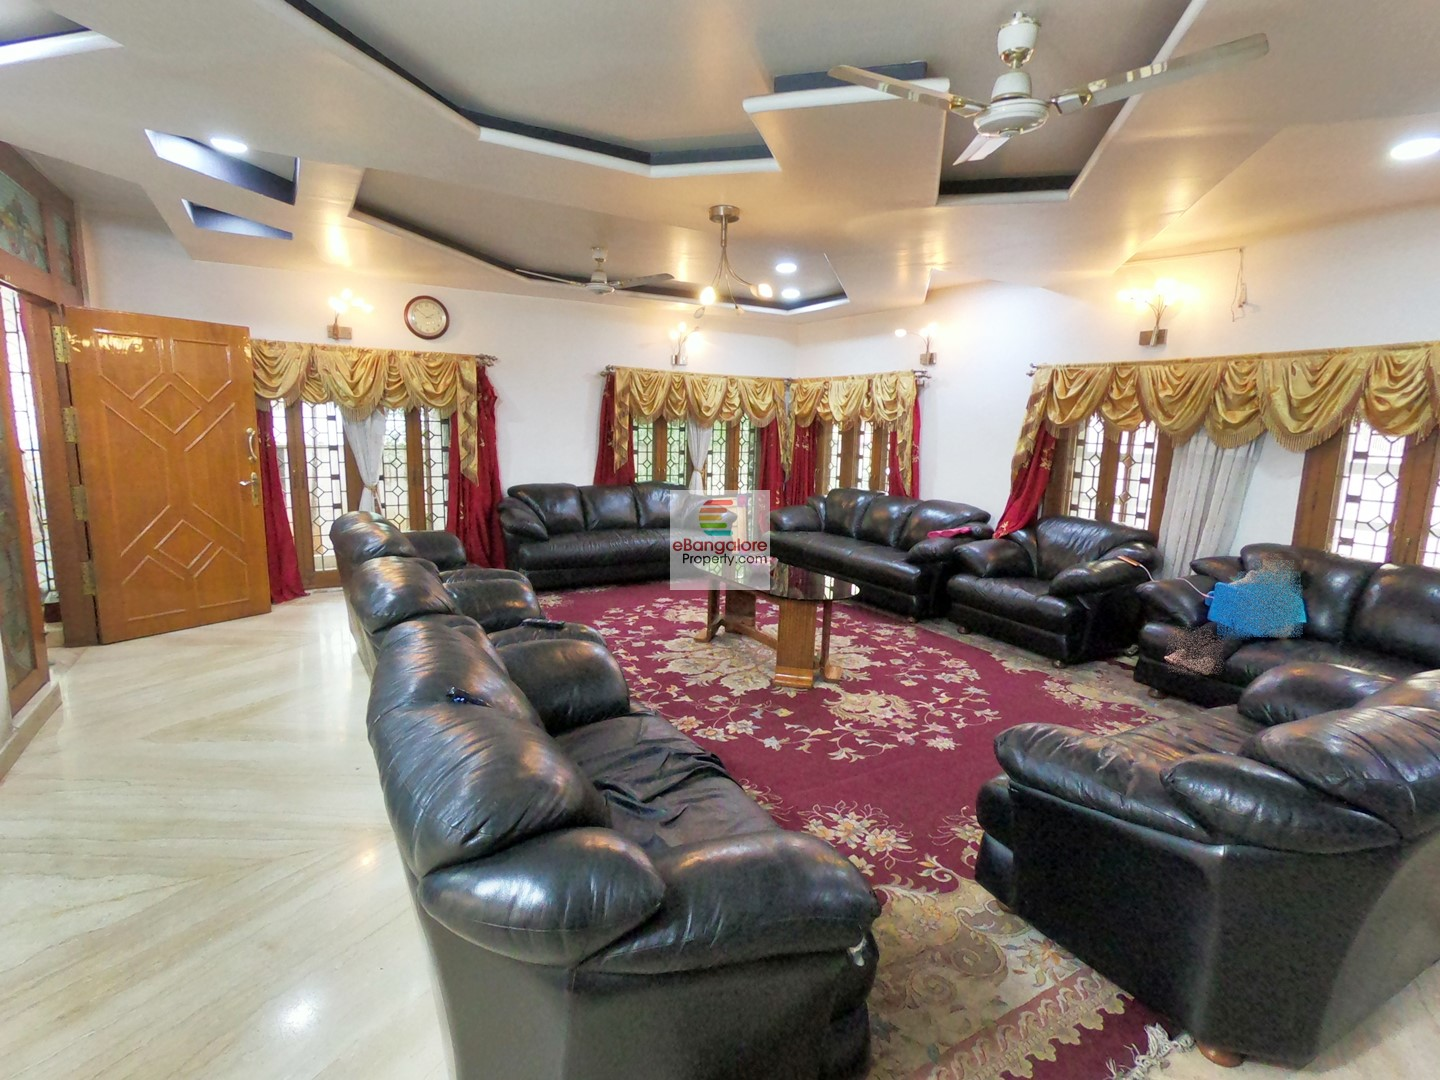 MG Road CBD – 7BHK Royal Bungalow for sale on 50×80 – Near Garuda Mall